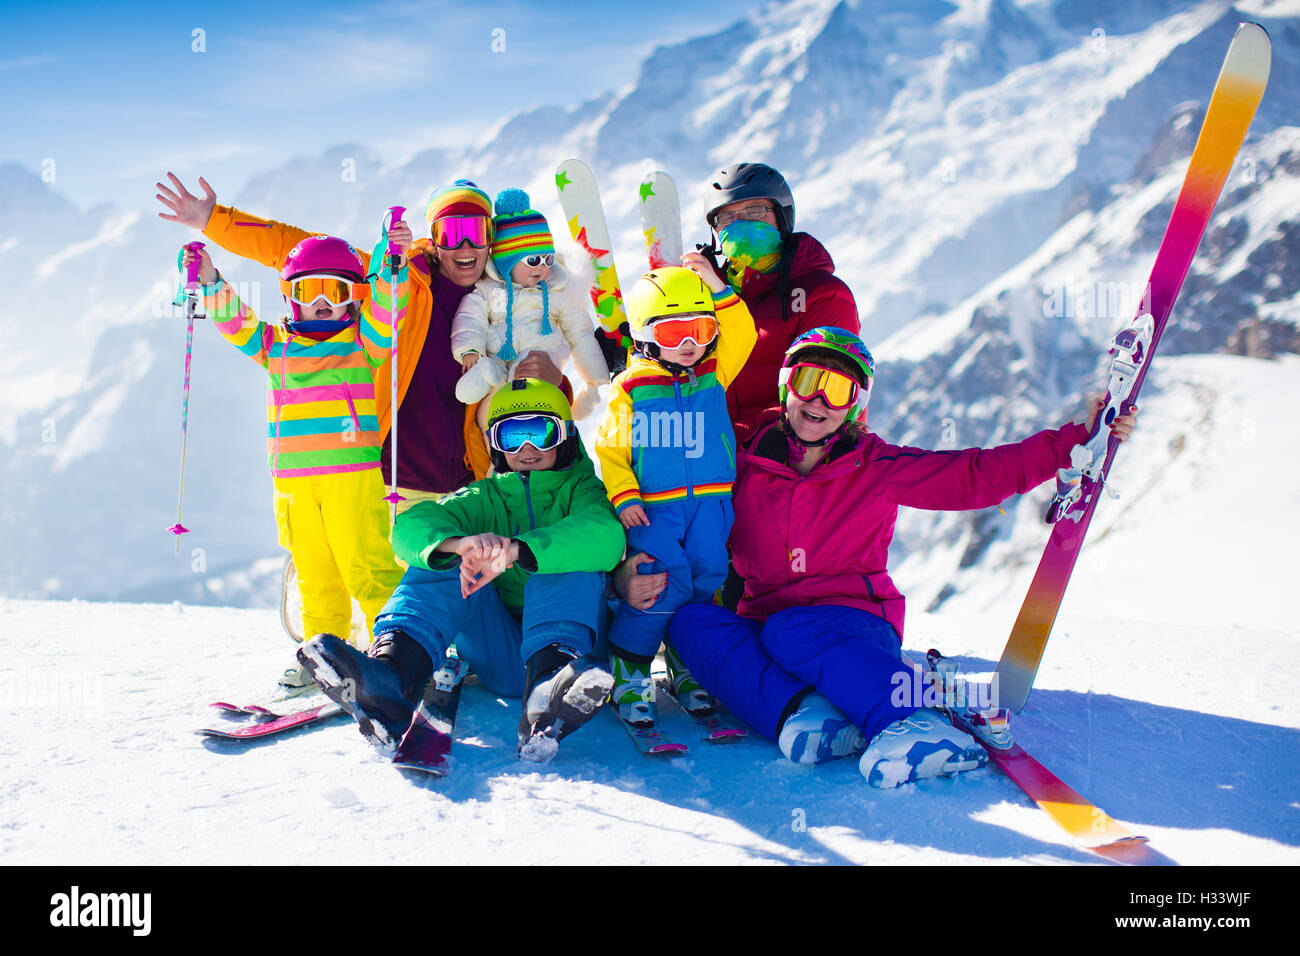 Family Ski Vacation Group Of Skiers In Swiss Alps Mountains Adults And Young Children Teenager Baby Skiing Winter